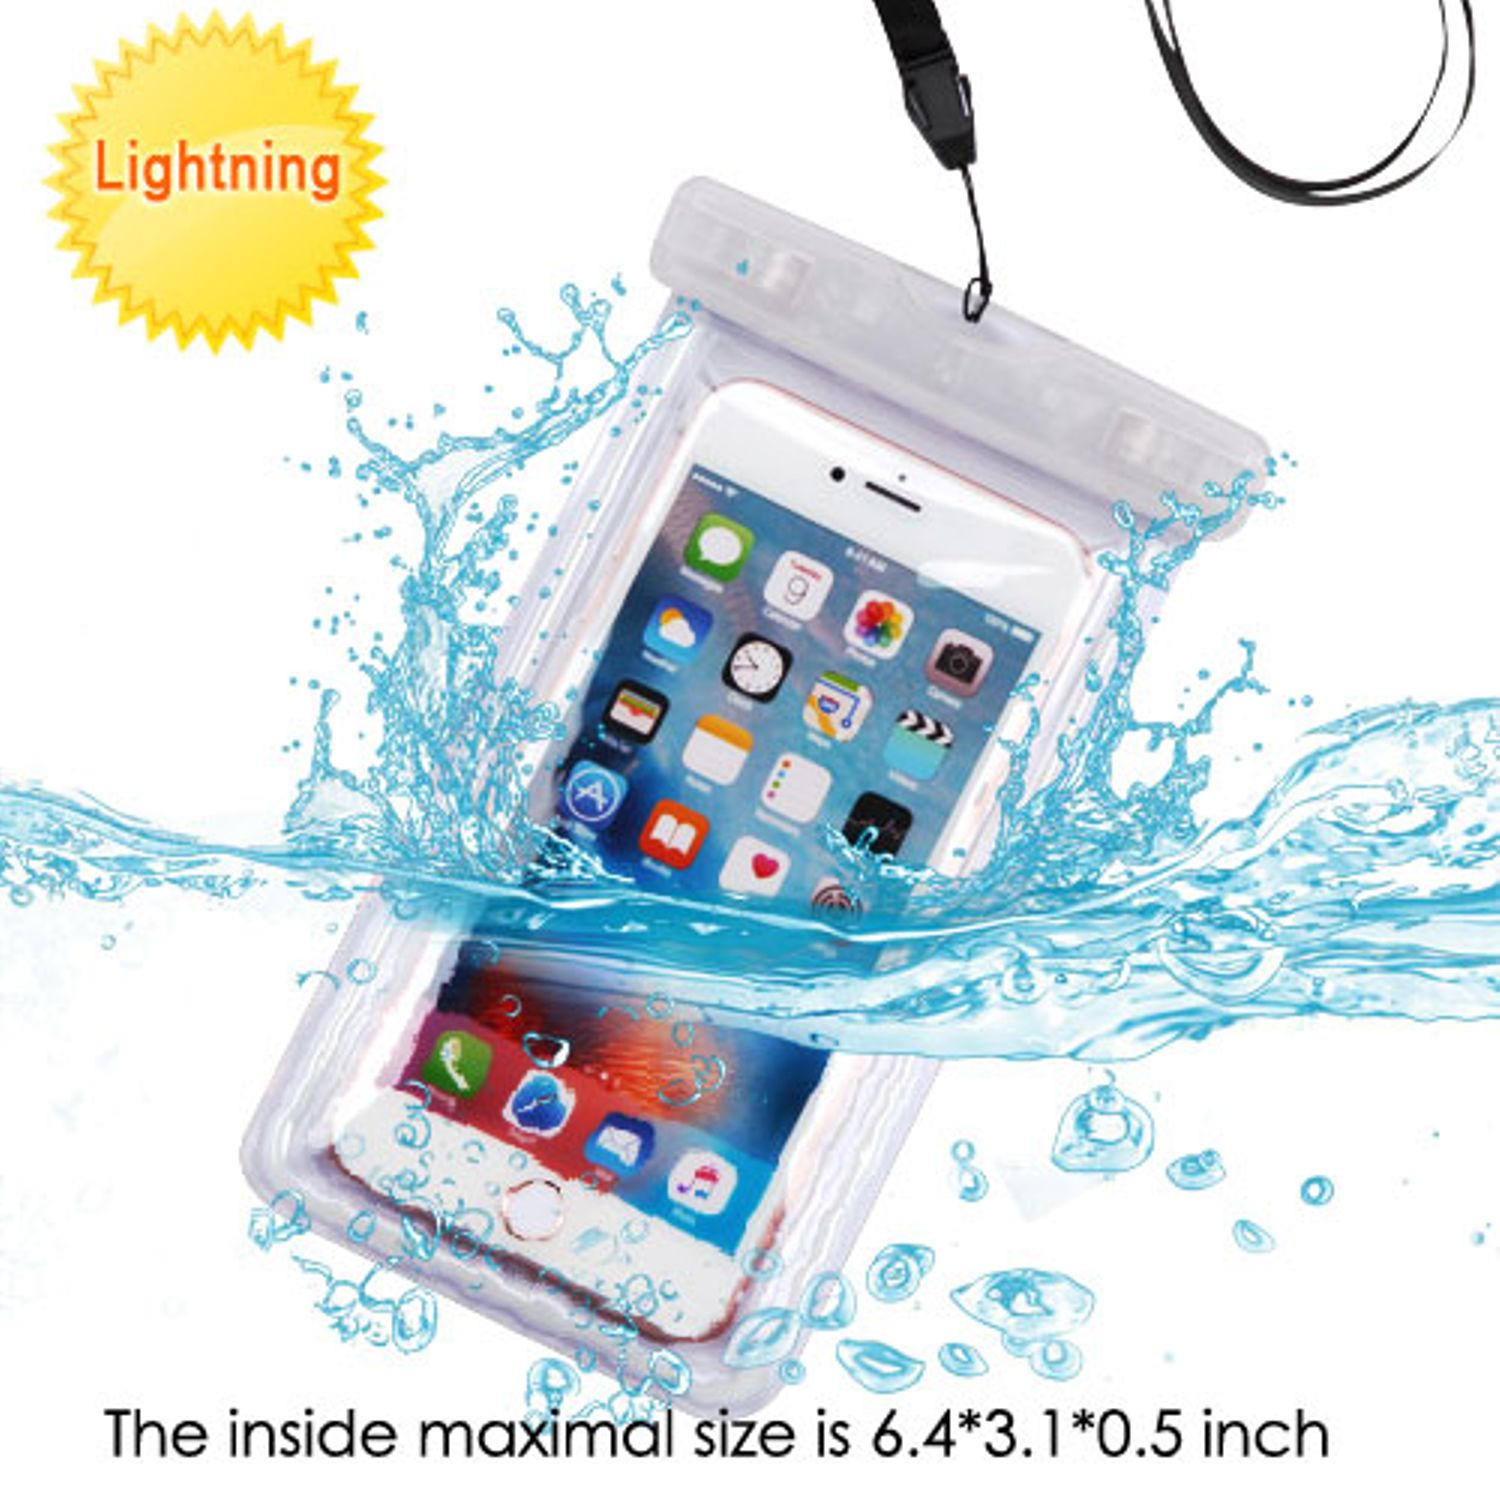 Universal Waterproof Phone Case by MyBat Universal Transparent Lightning Waterproof Bag Phone Case with Lanyard For iPhone 8 7 6s Plus 5s SE X Samsung S9 S8 S7 J7 - Clear